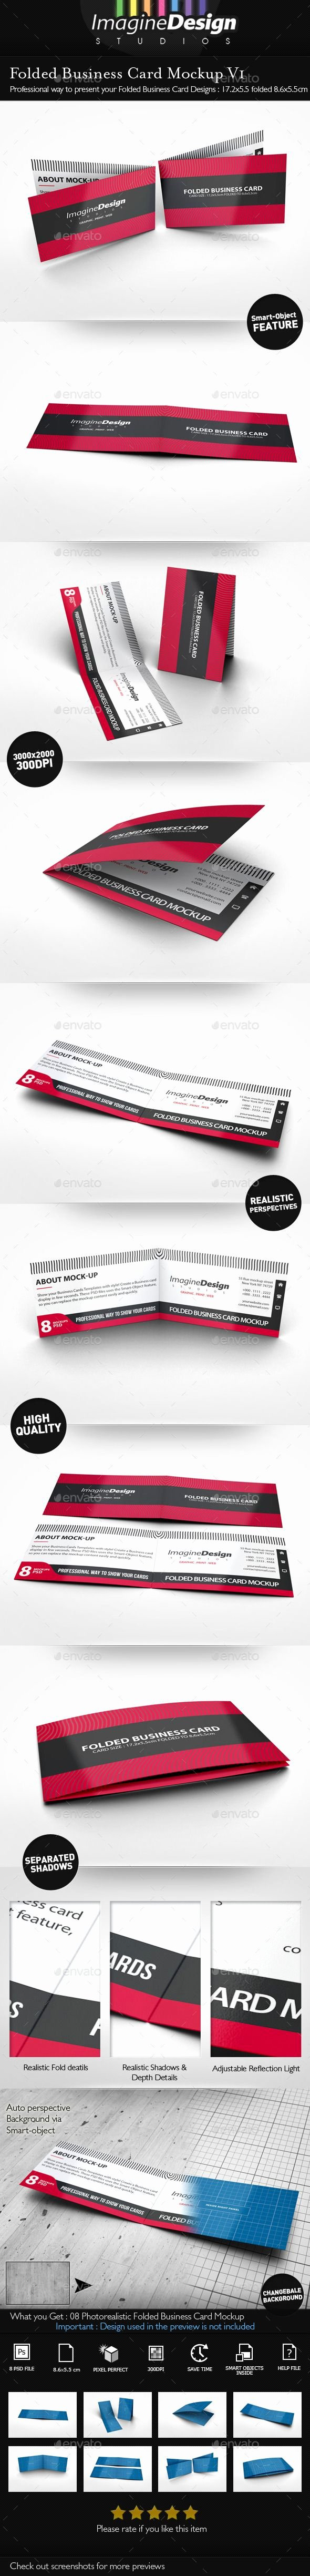 Foldable Business Card Template Lovely 25 Best Ideas About Folded Business Cards On Pinterest